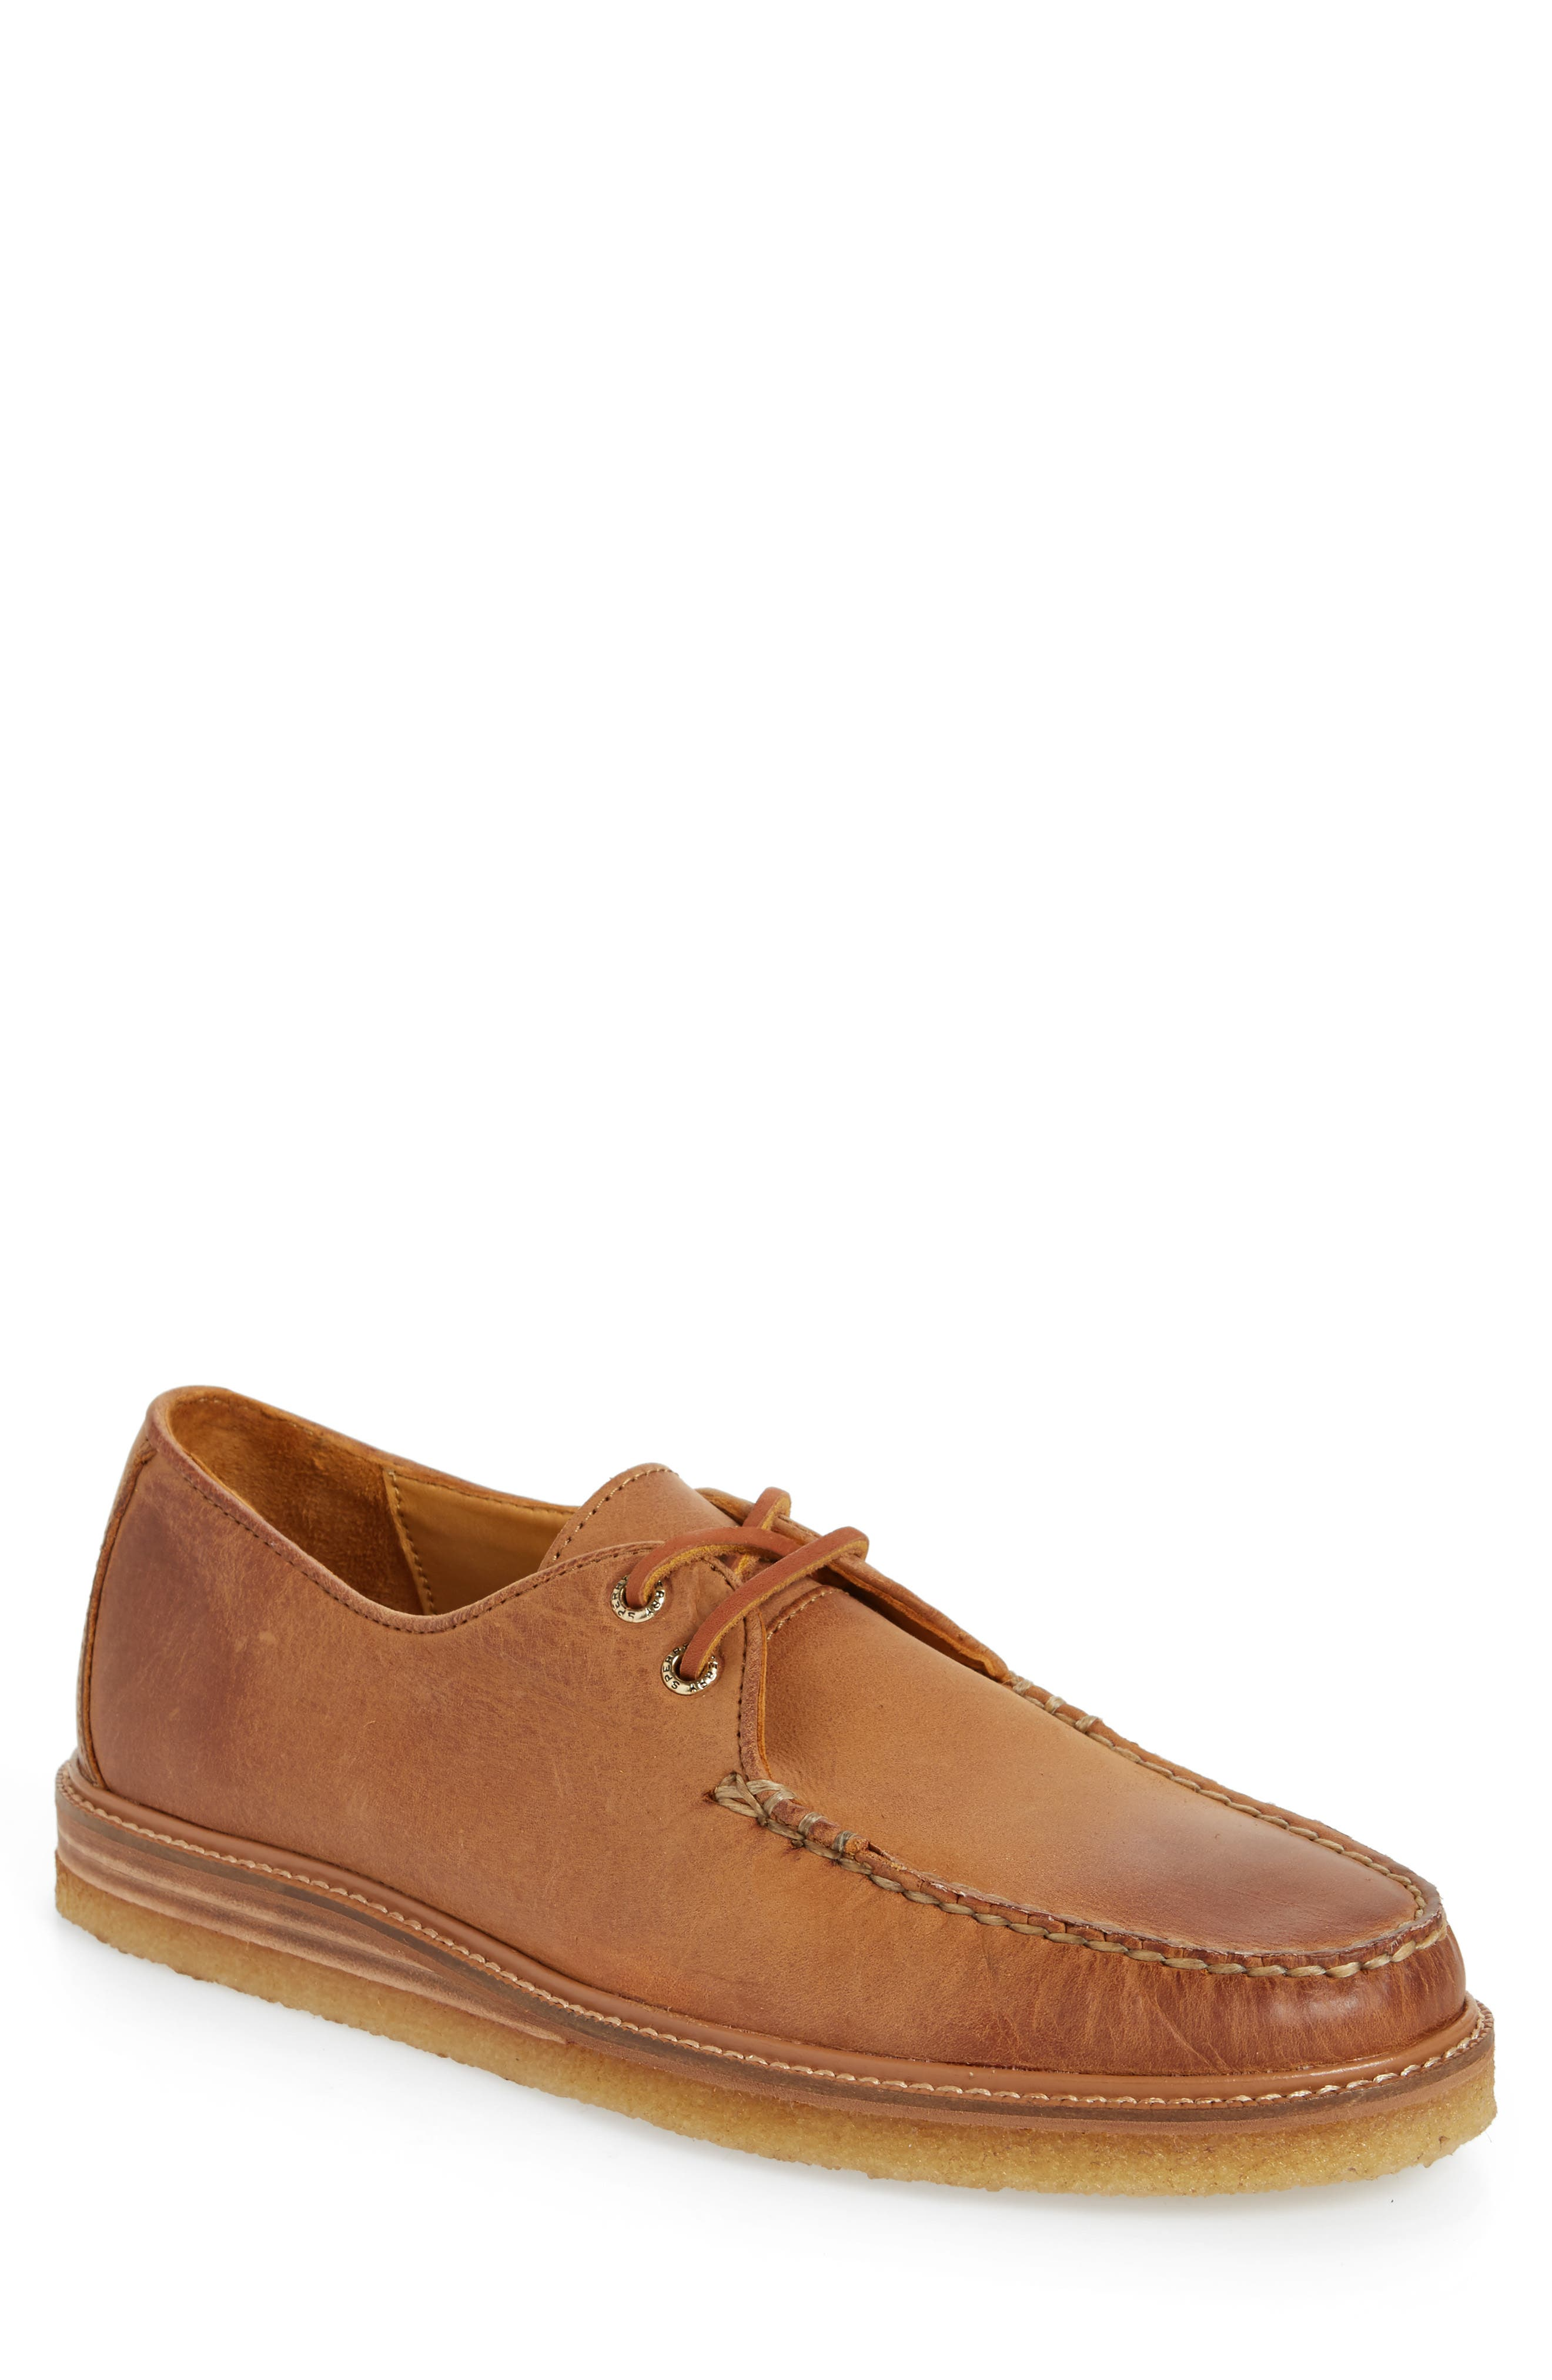 Gold Cup Captain's Crepe Sole Oxford,                         Main,                         color,